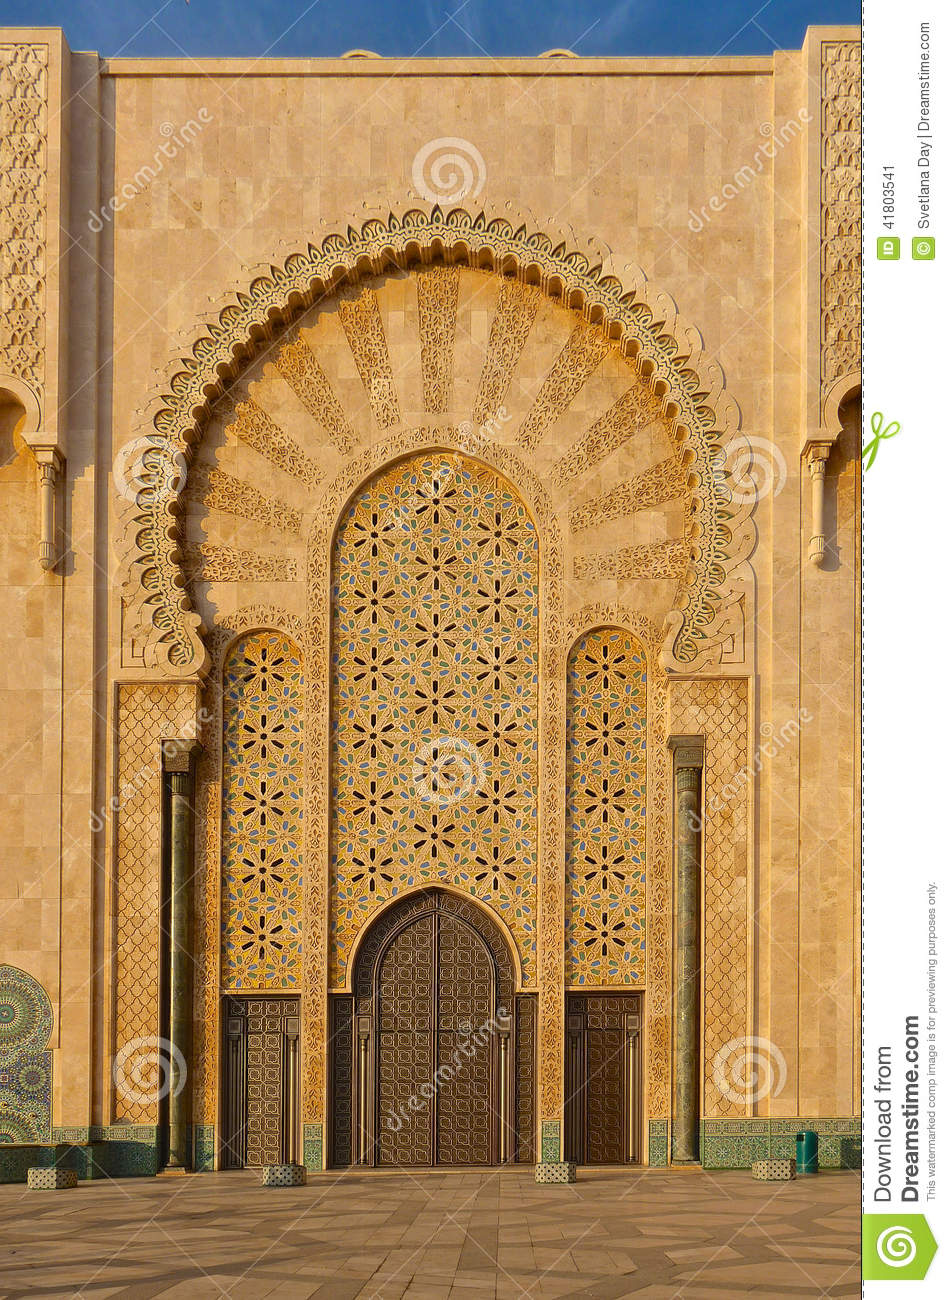 Ornate gates of a moroccan mosque stock photo image for Arabesque style decoration